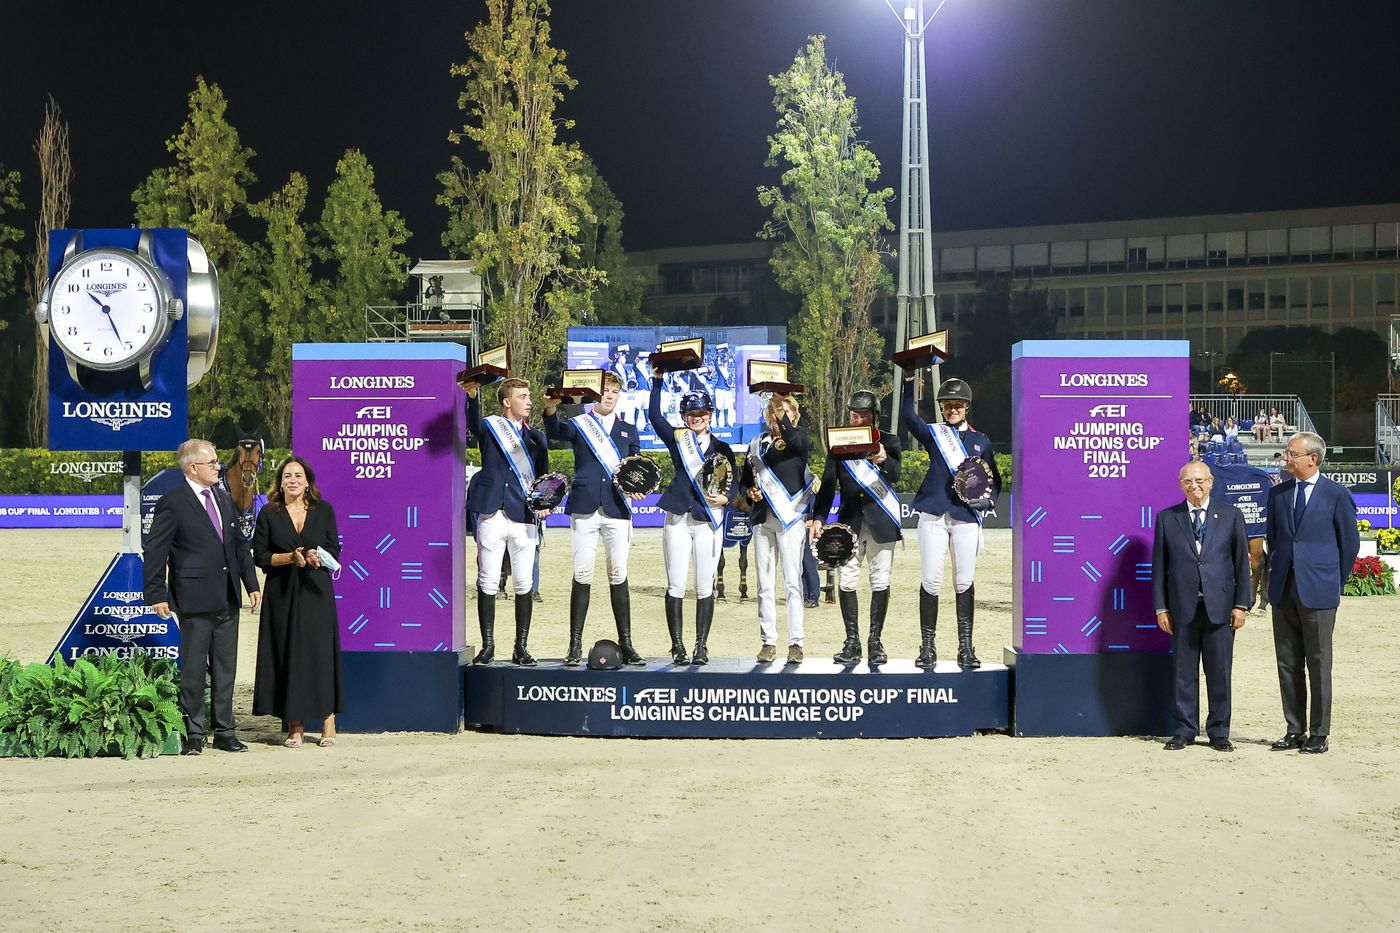 Longines Show Jumping Event: The world's elite riders return to the magnificent city of Barcelona to contend for the Longines FEI Jumping Nations Cup Final  2